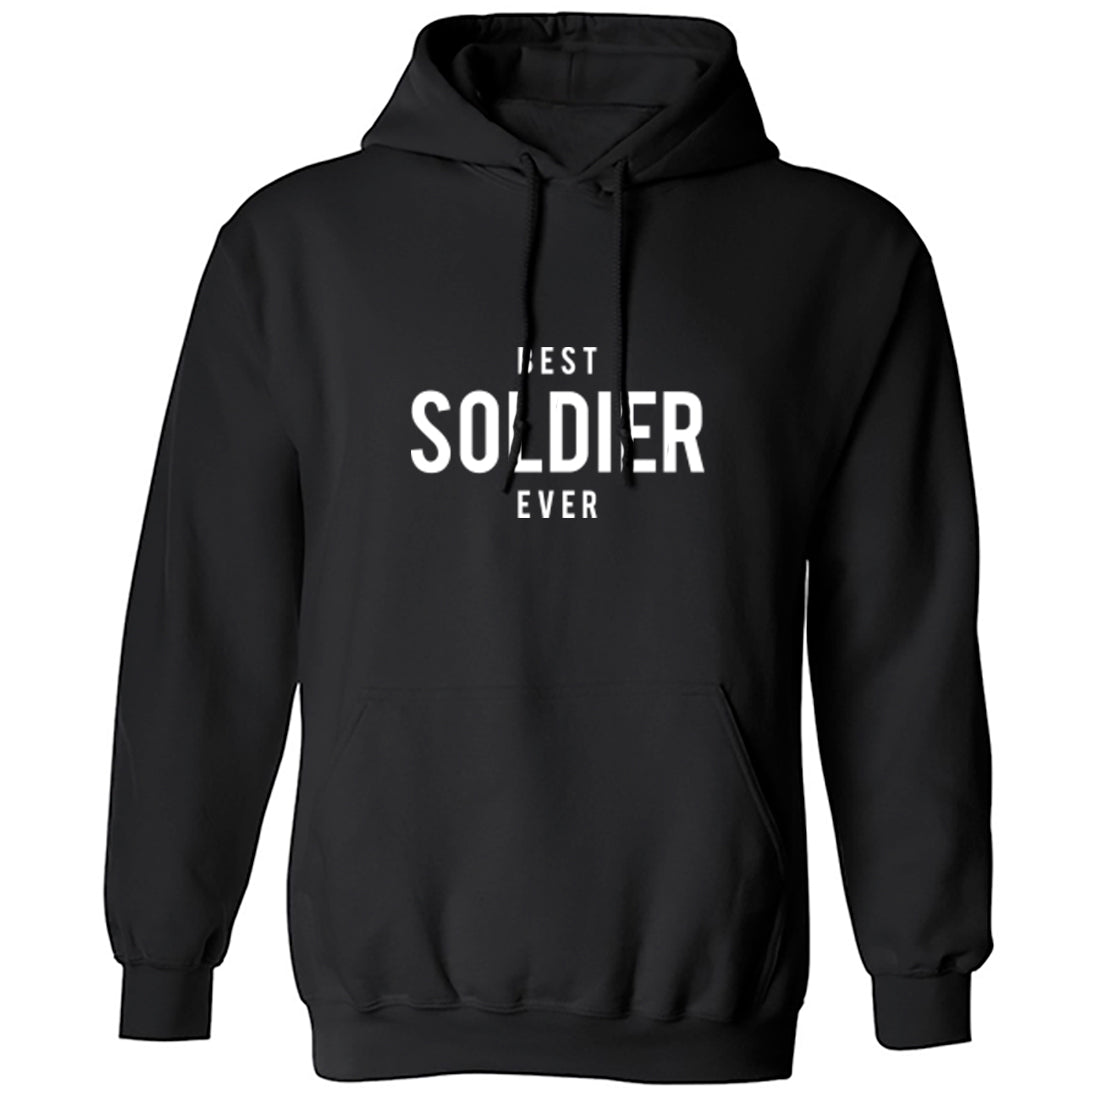 Best Soldier Ever Unisex Hoodie K1502 - Illustrated Identity Ltd.